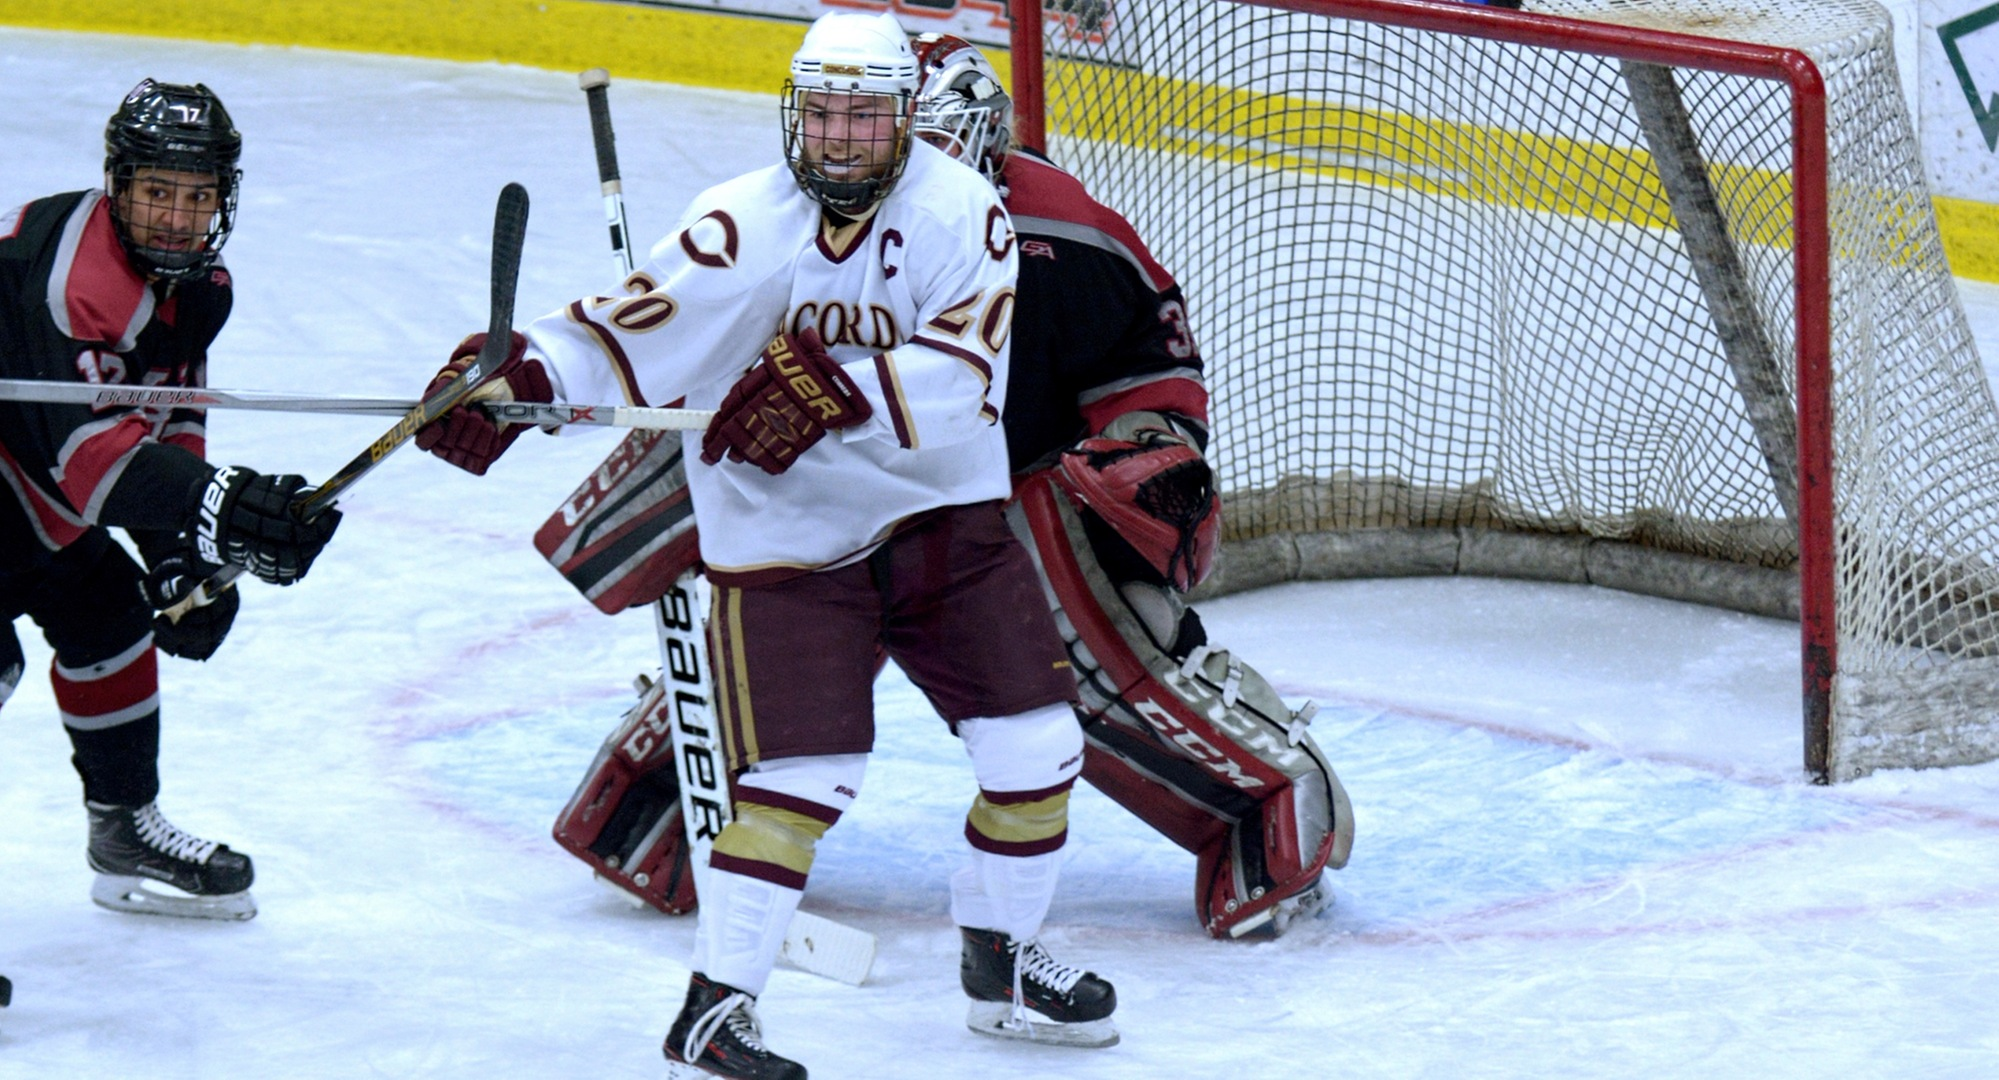 Senior captain Jeremy Johnson scored the Cobbers' lone goal in the MIAC semifinal game at St. Thomas.